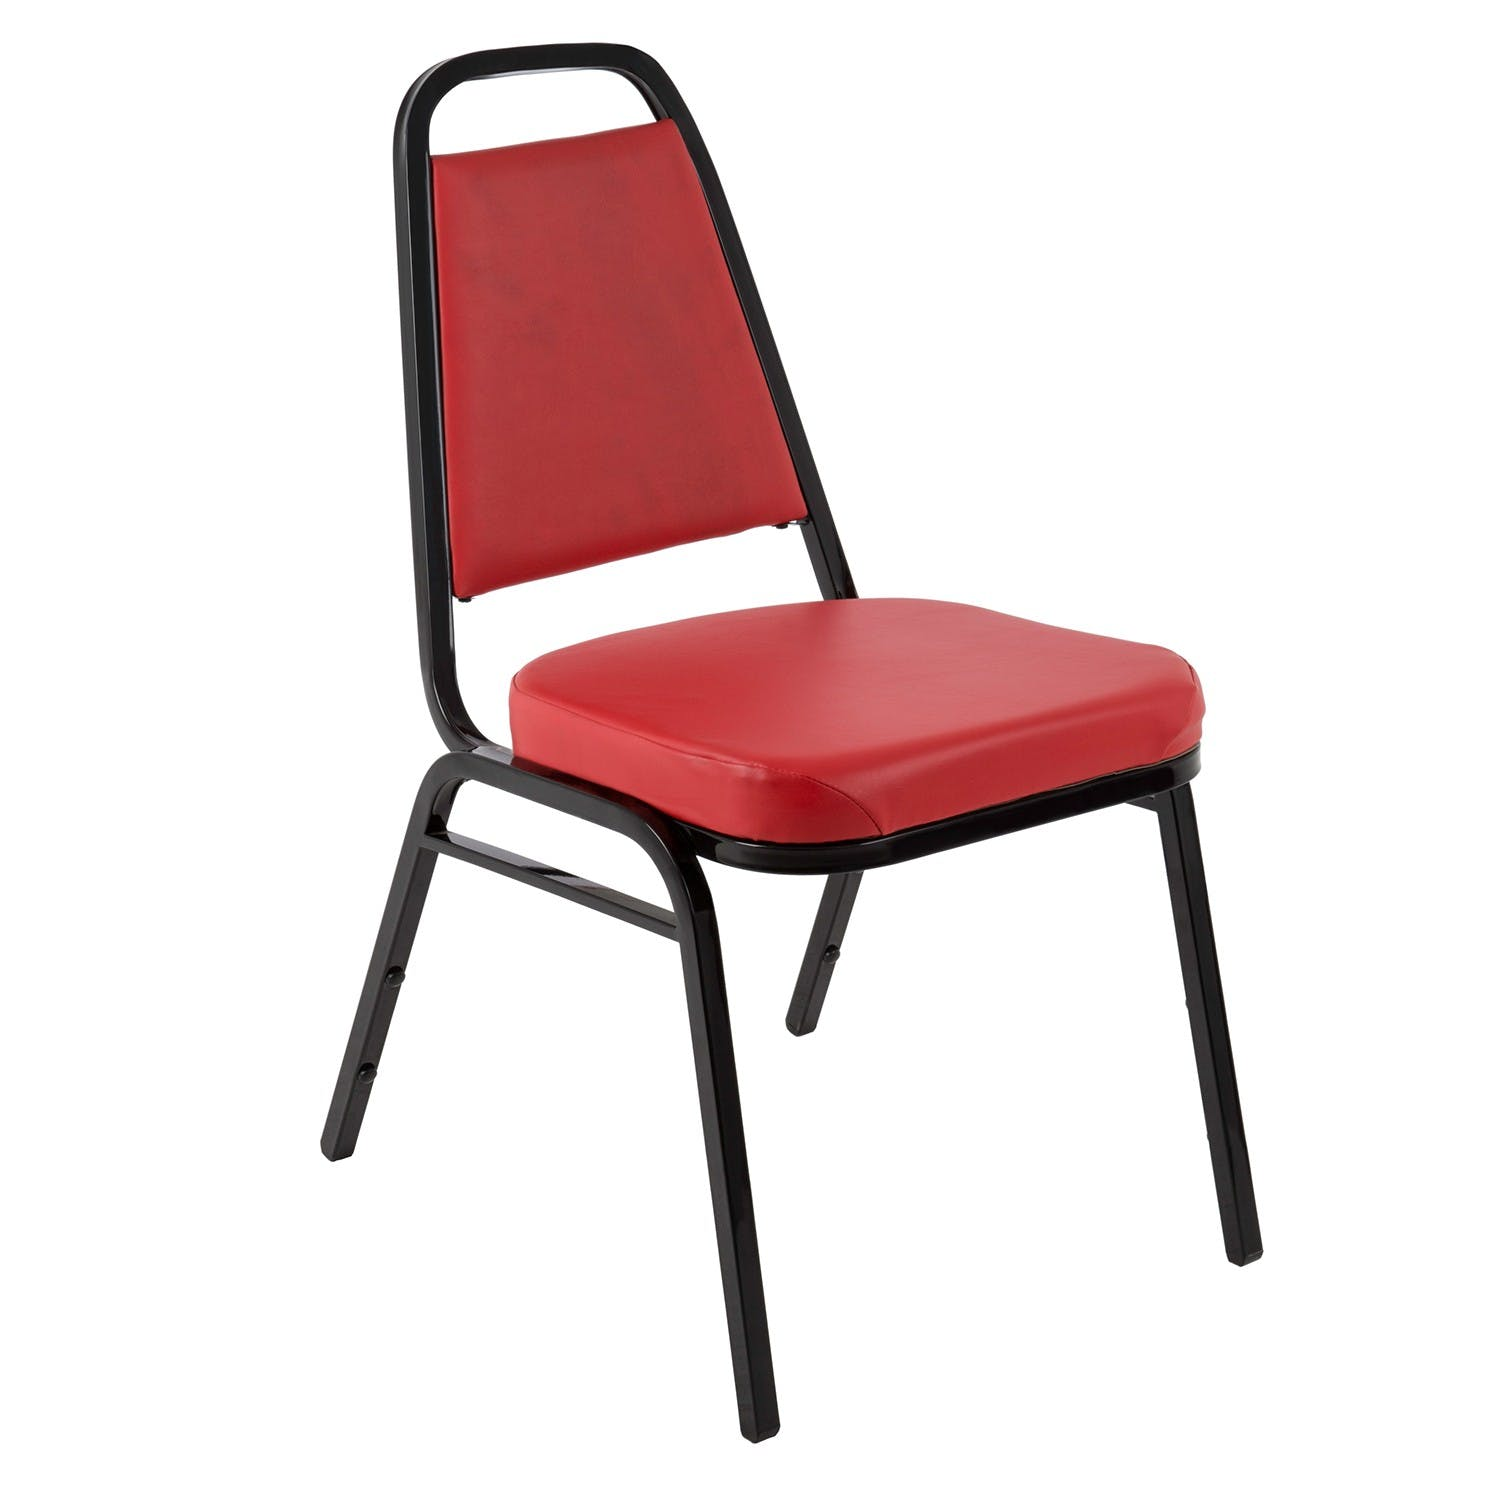 Jaxpro SCRED | Metal Stacking Chair w/ Red Vinyl Seat Restaurant chair sold by Mission Restaurant Supply